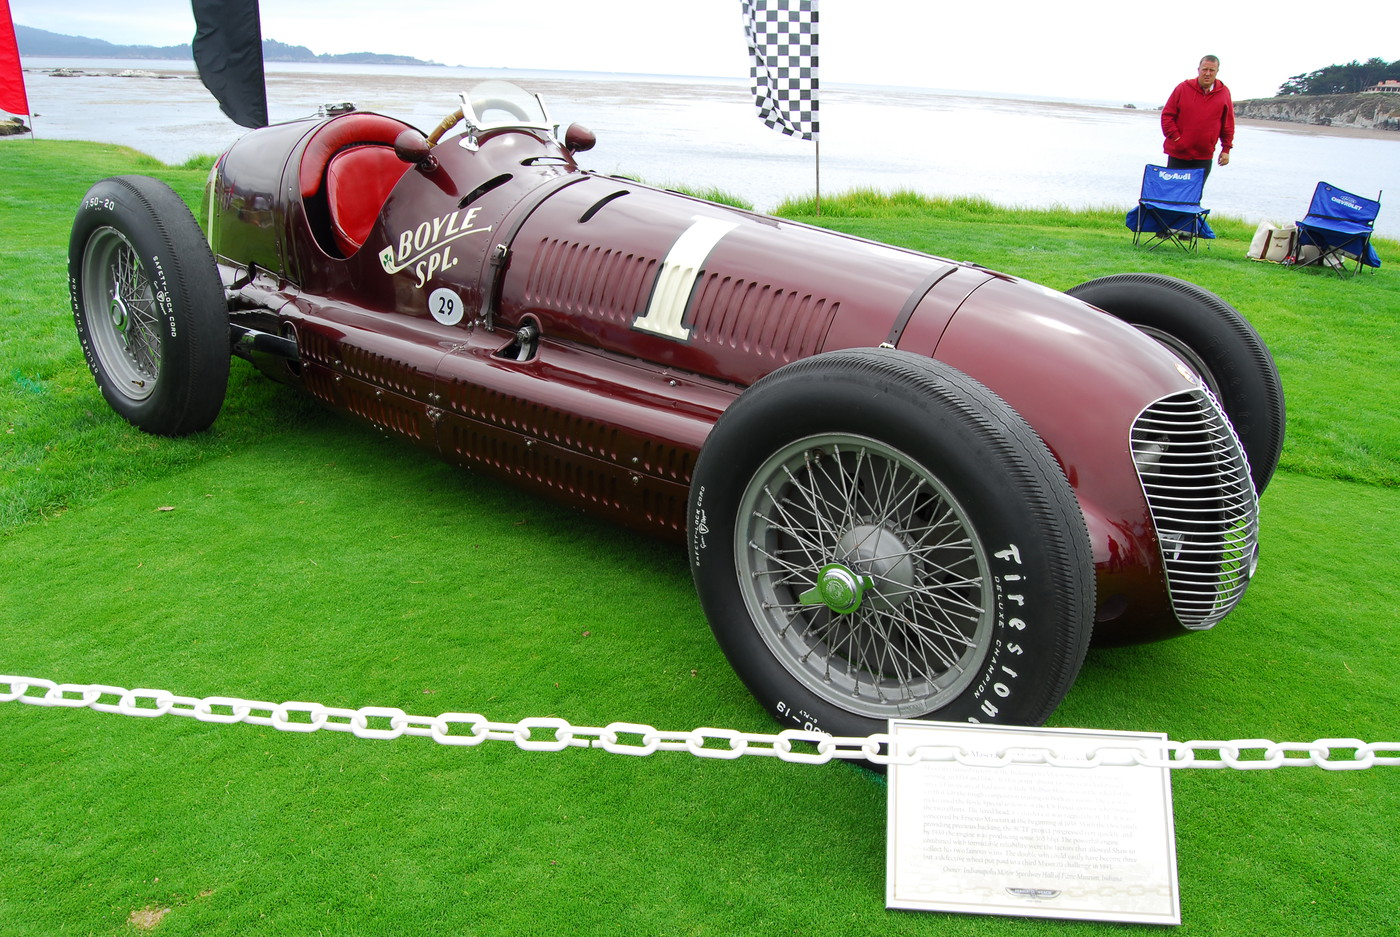 1938 Maserati 8CTF Boyle Valve Special Indy Car front exterior view